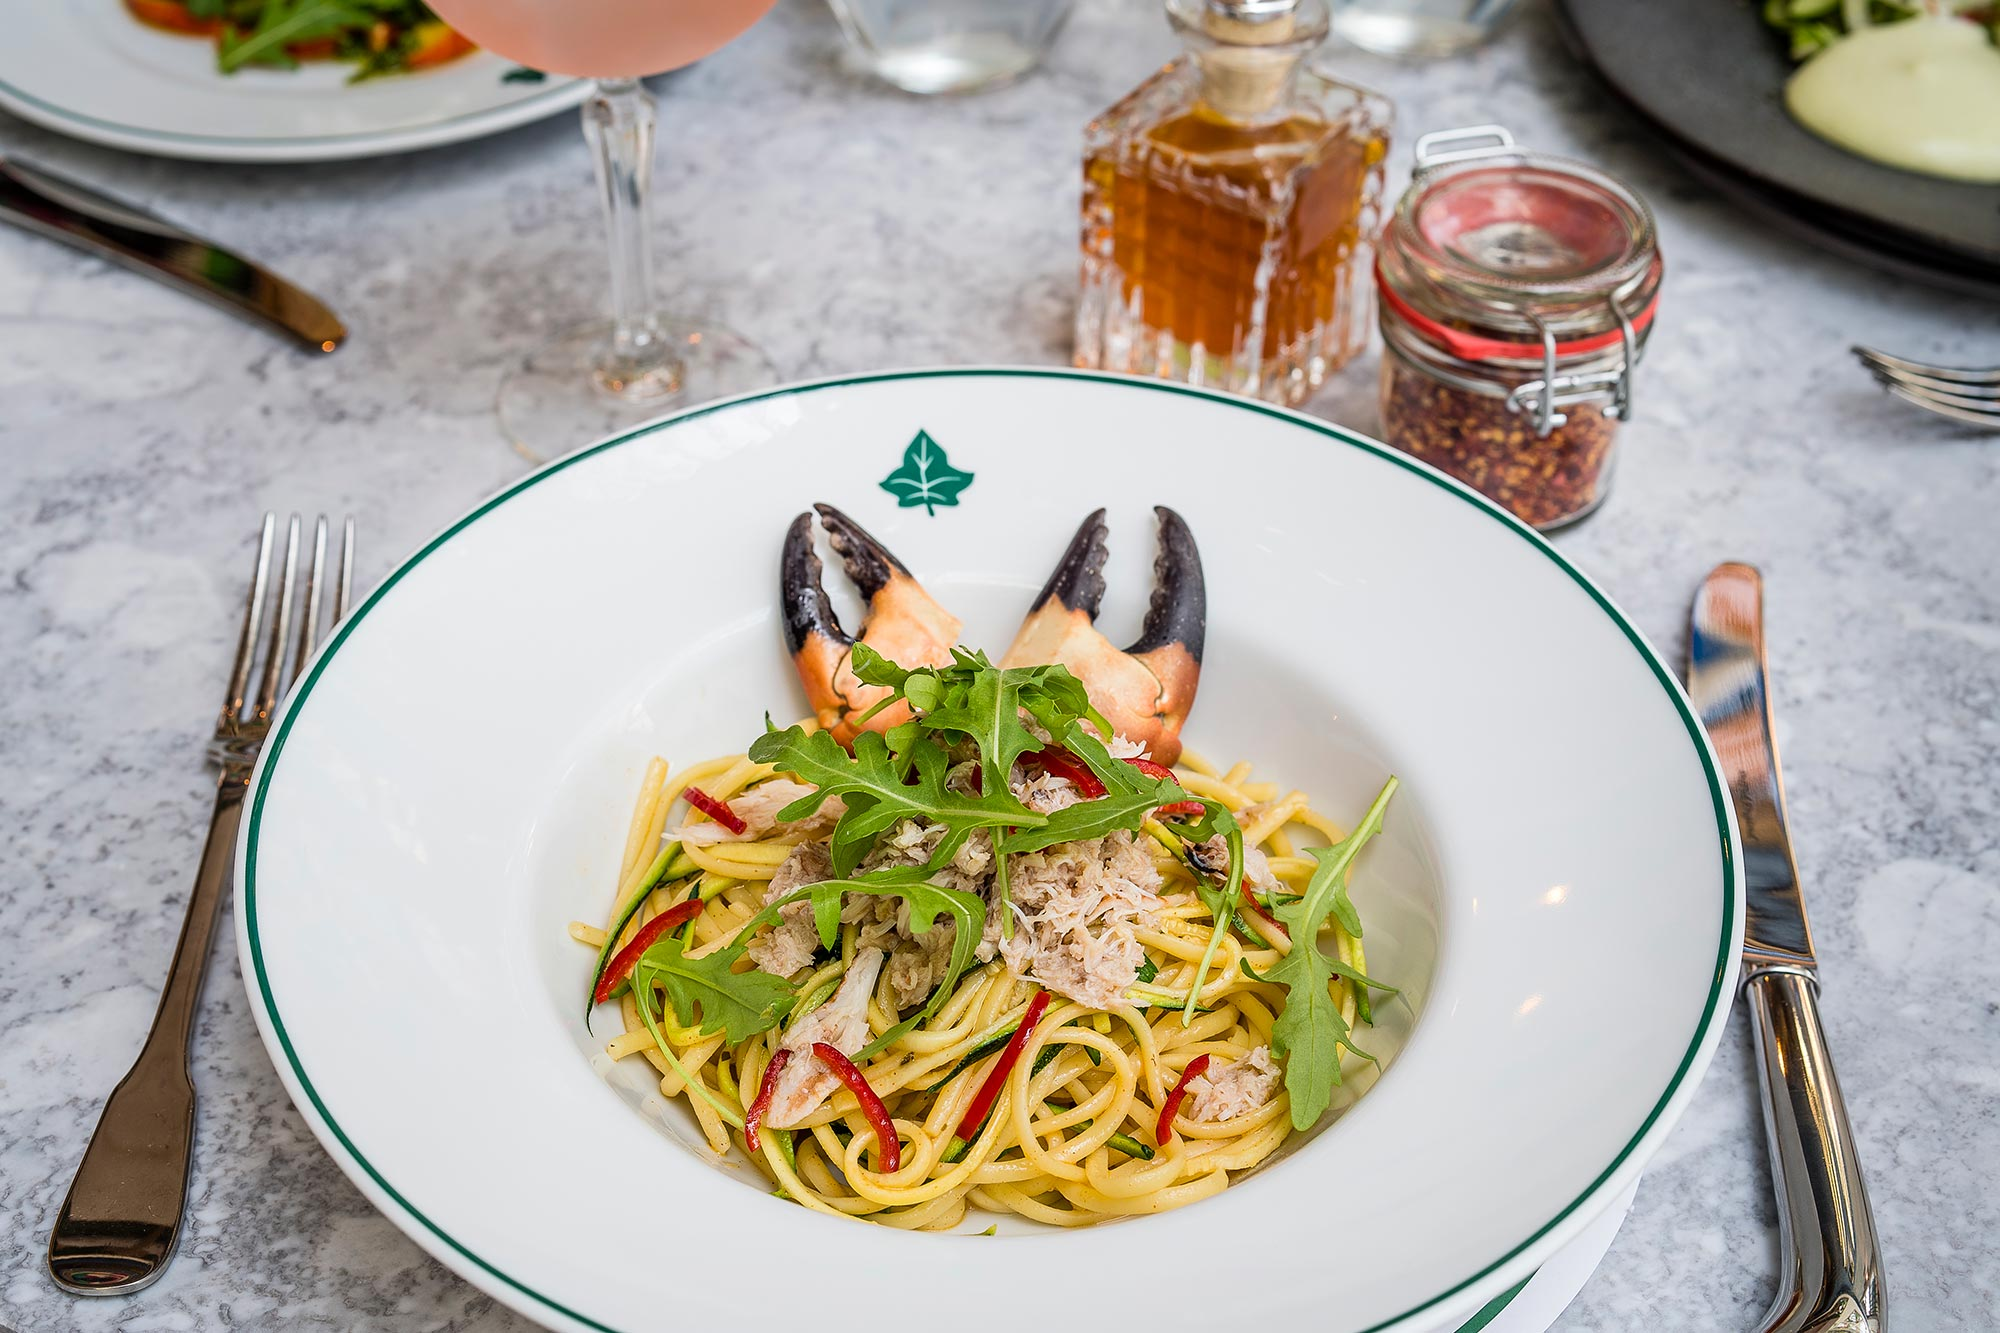 Lunch in Bath at The Ivy Bath Brasserie - Crab linguine - The Ivy Bath Brasserie